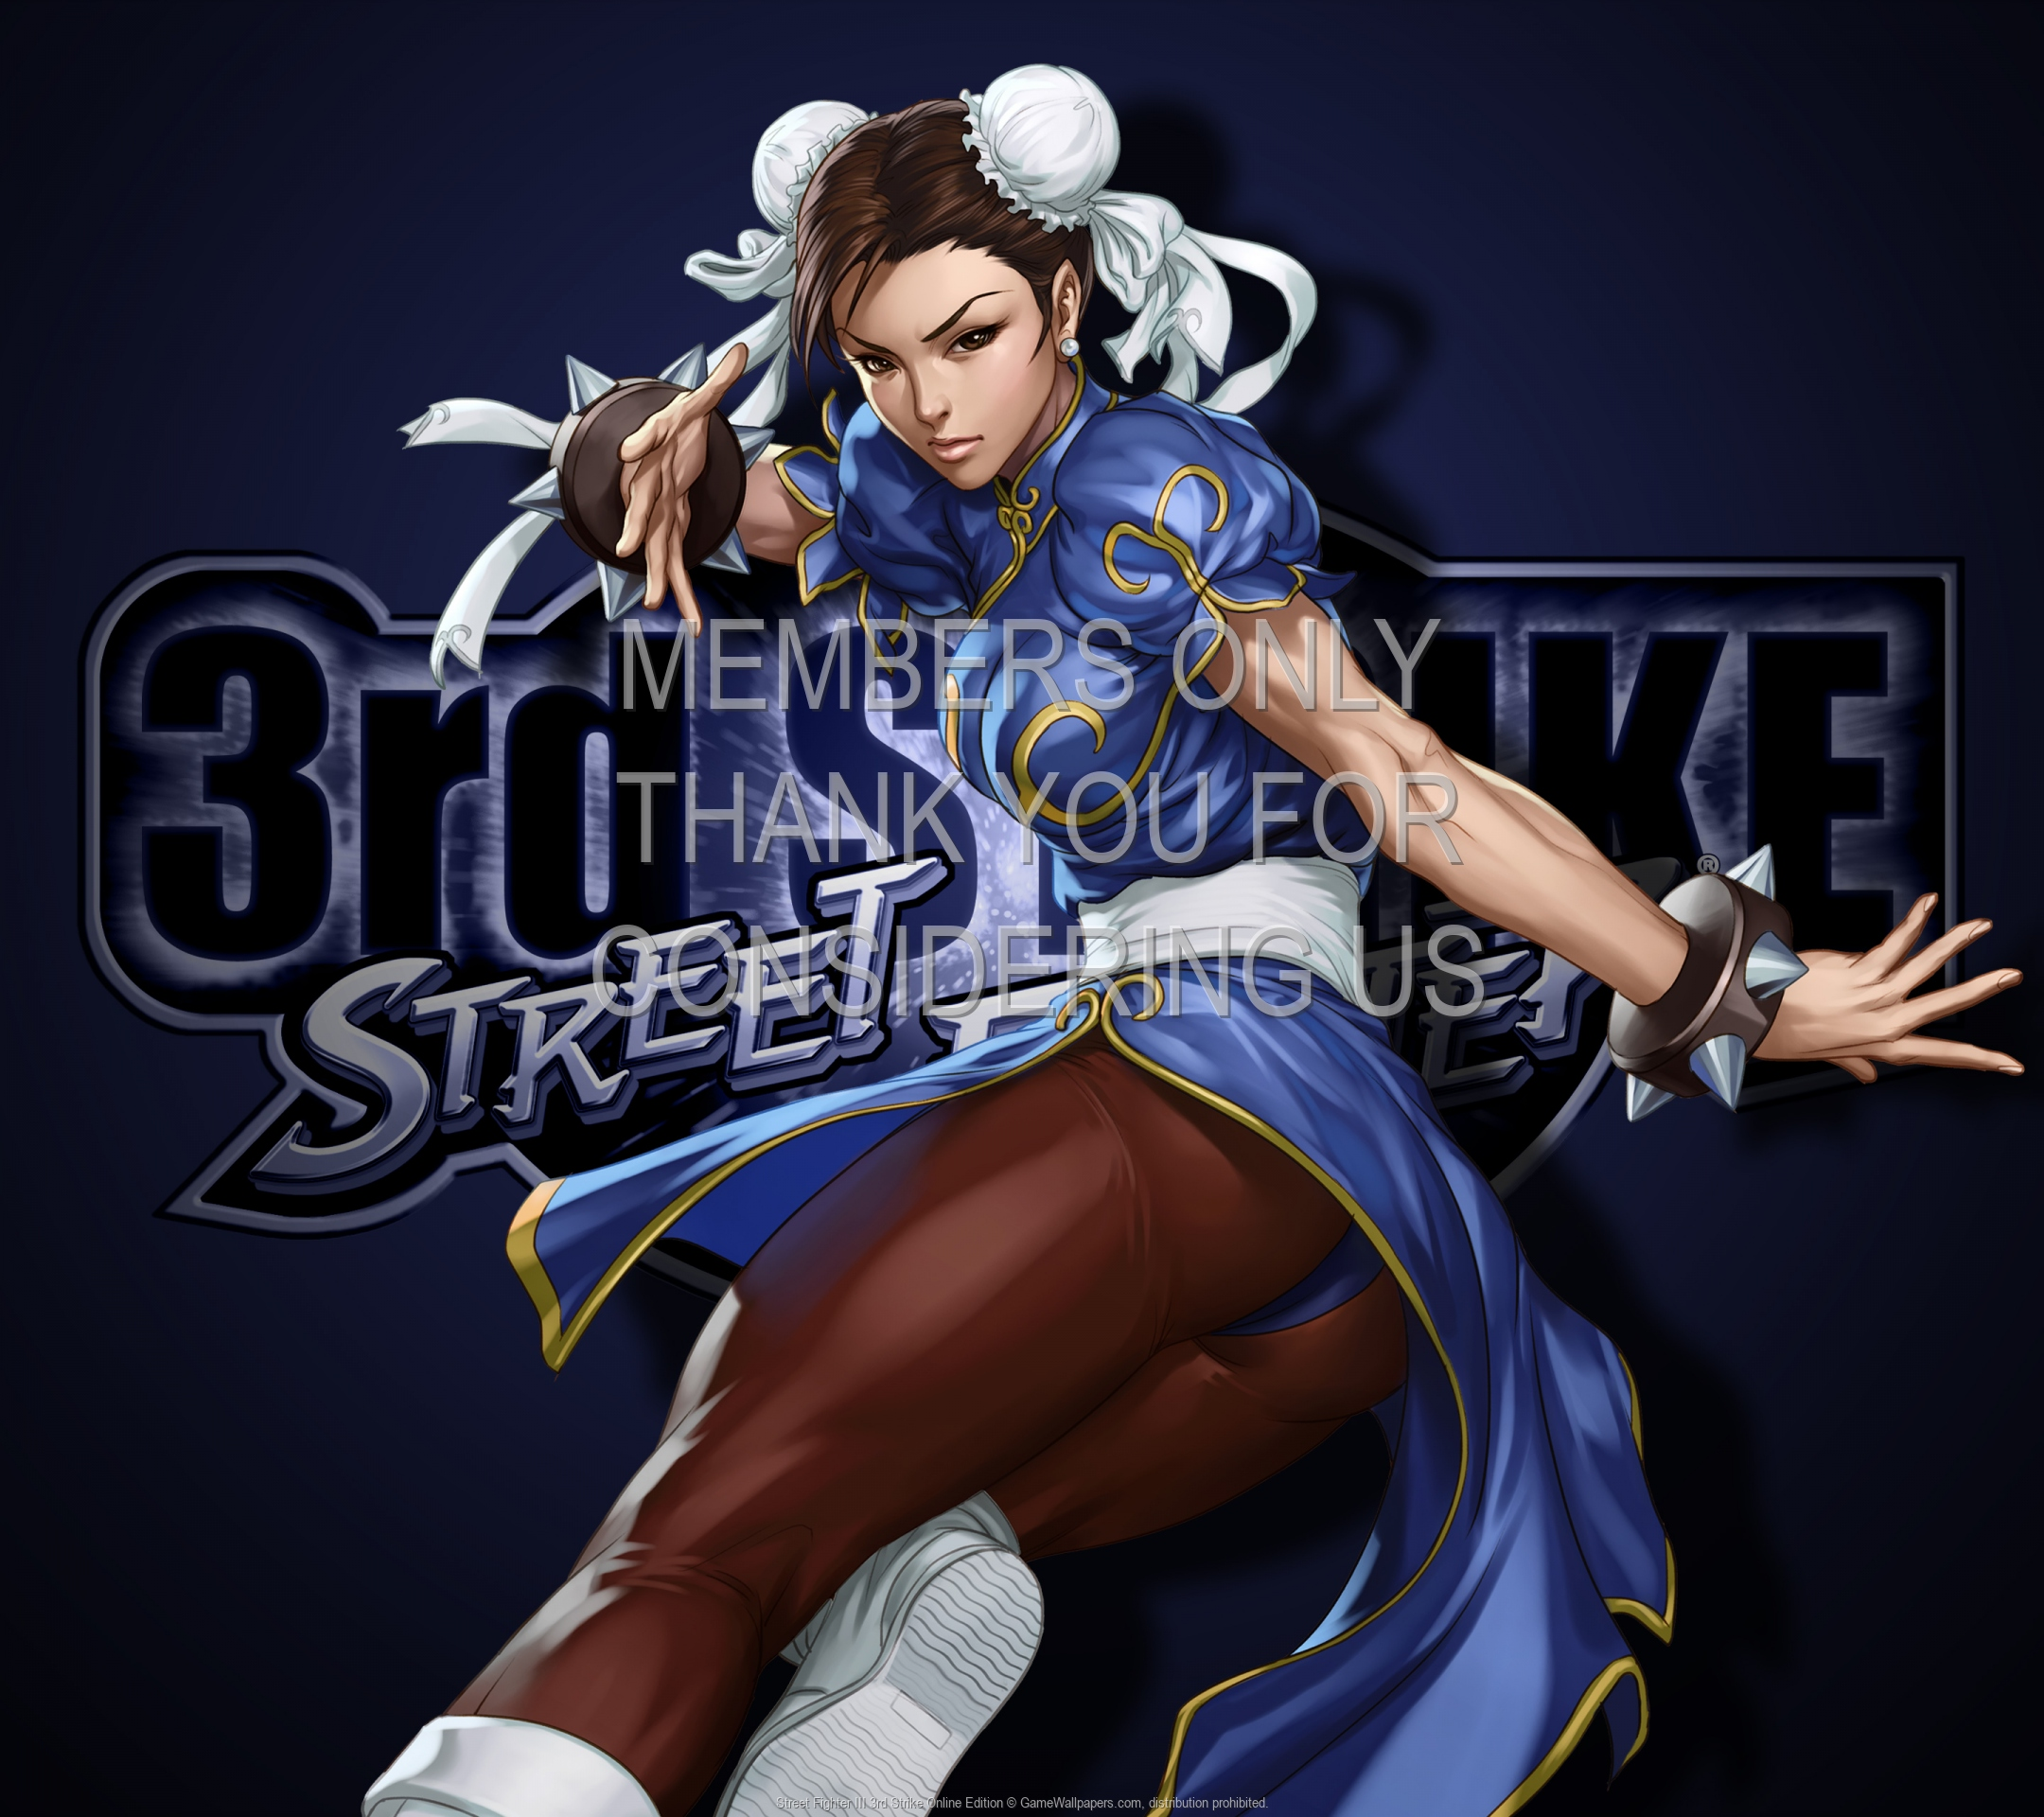 Street Fighter III: 3rd Strike Online Edition 1920x1080 Mobile wallpaper or background 01